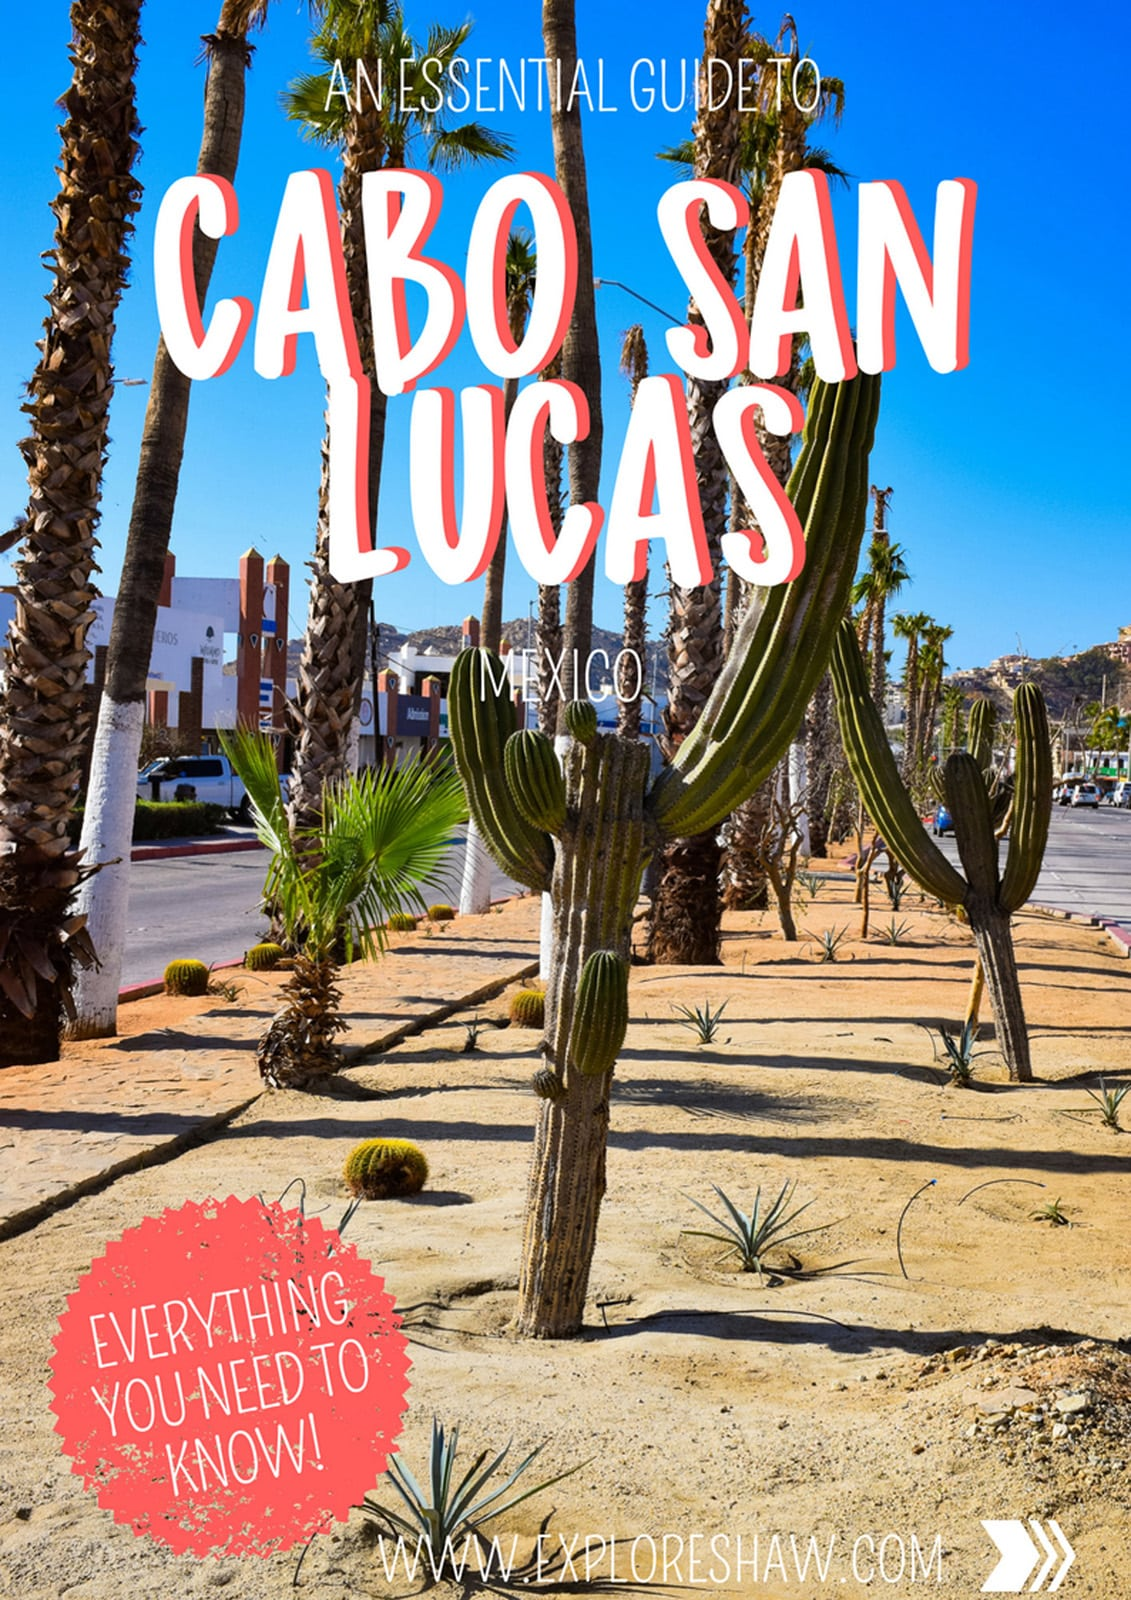 AN ESSENTIAL GUIDE TO CABO SAN LUCAS